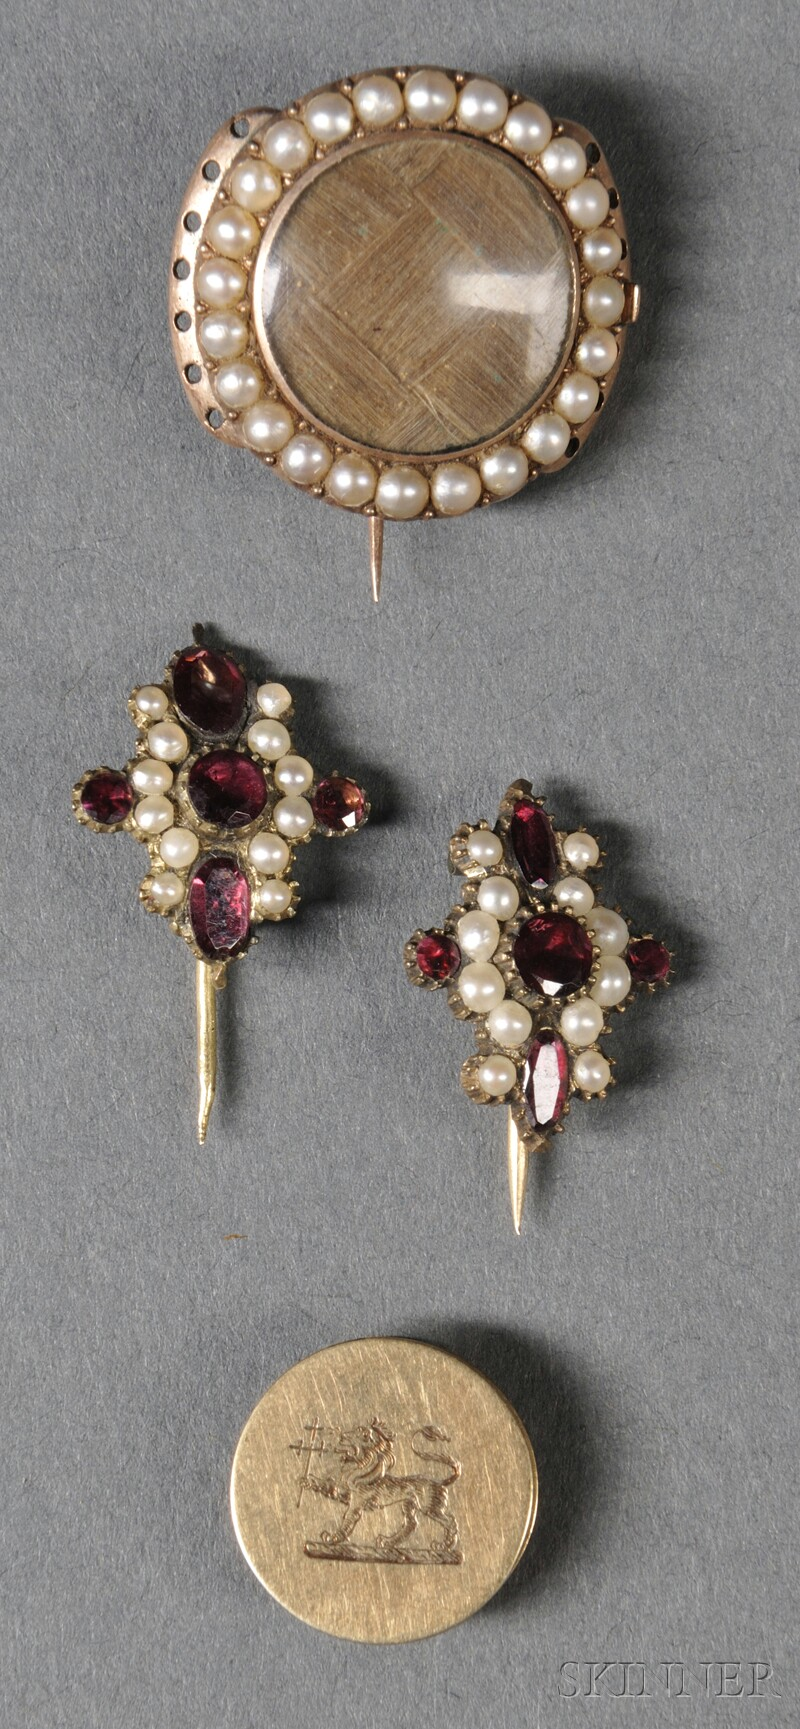 Four Pieces of Adams Family Jewelry